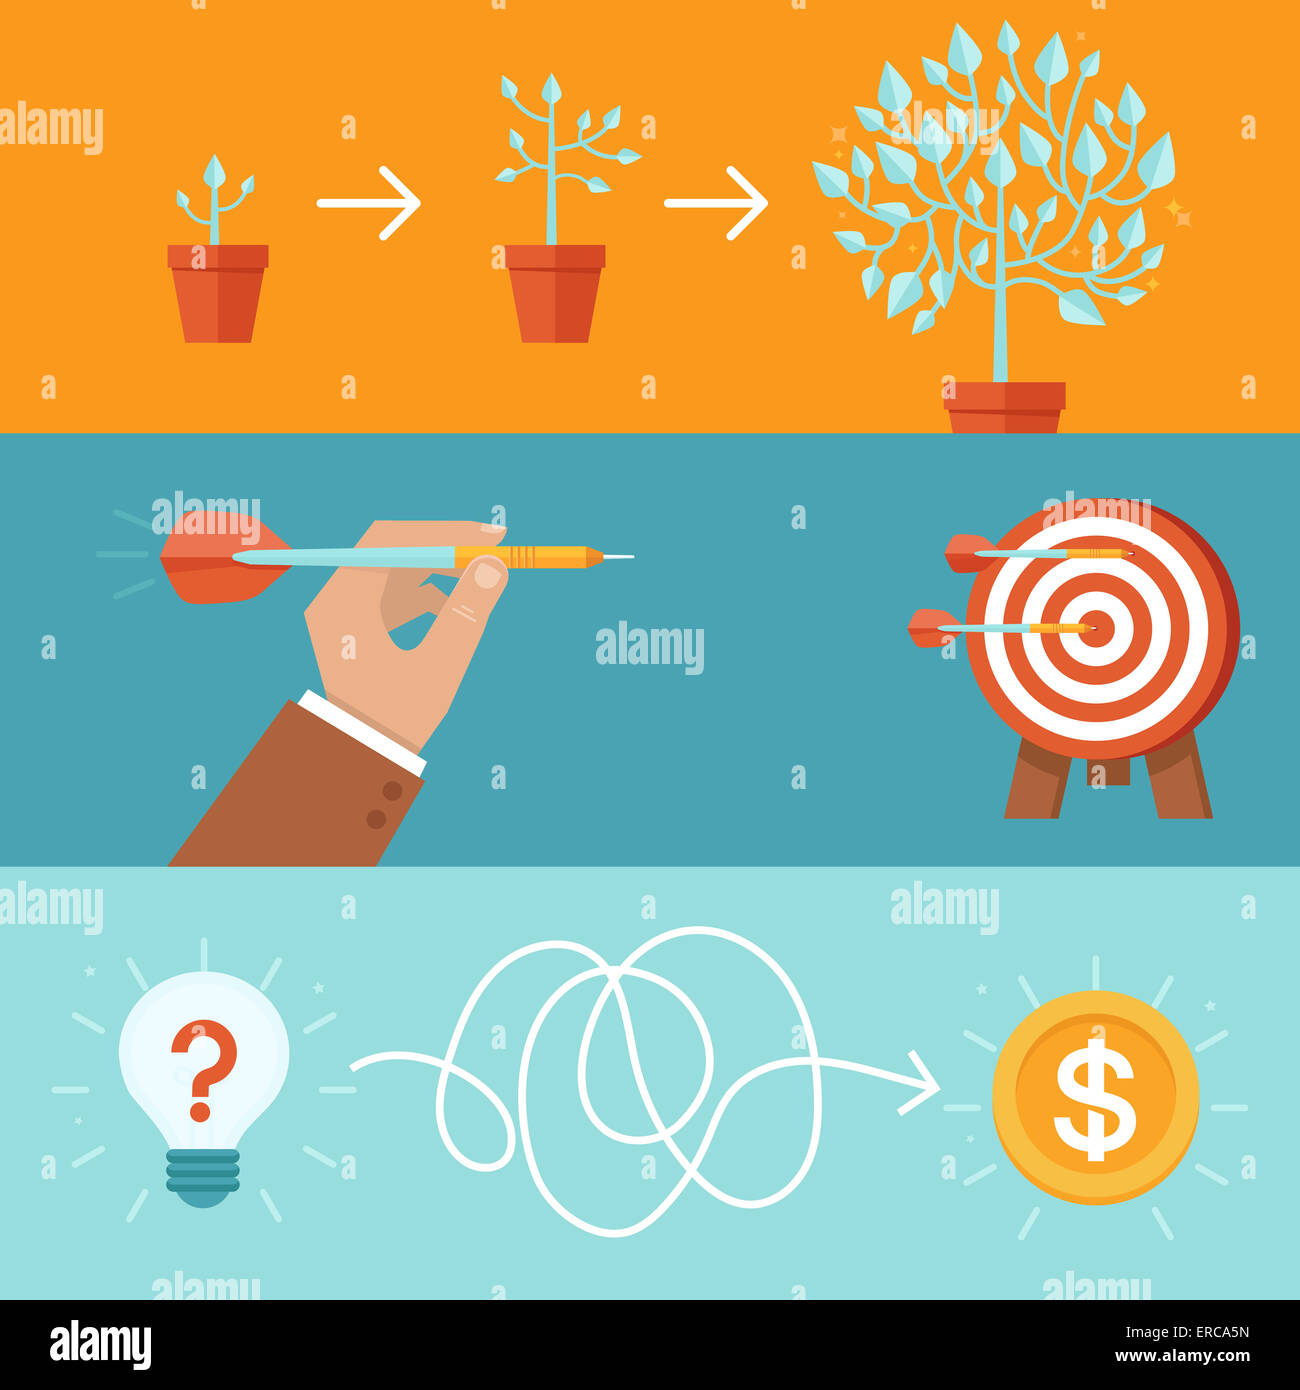 Achievement and realization concepts in flat style - achieving goals and success abstract illustrations - Stock Image